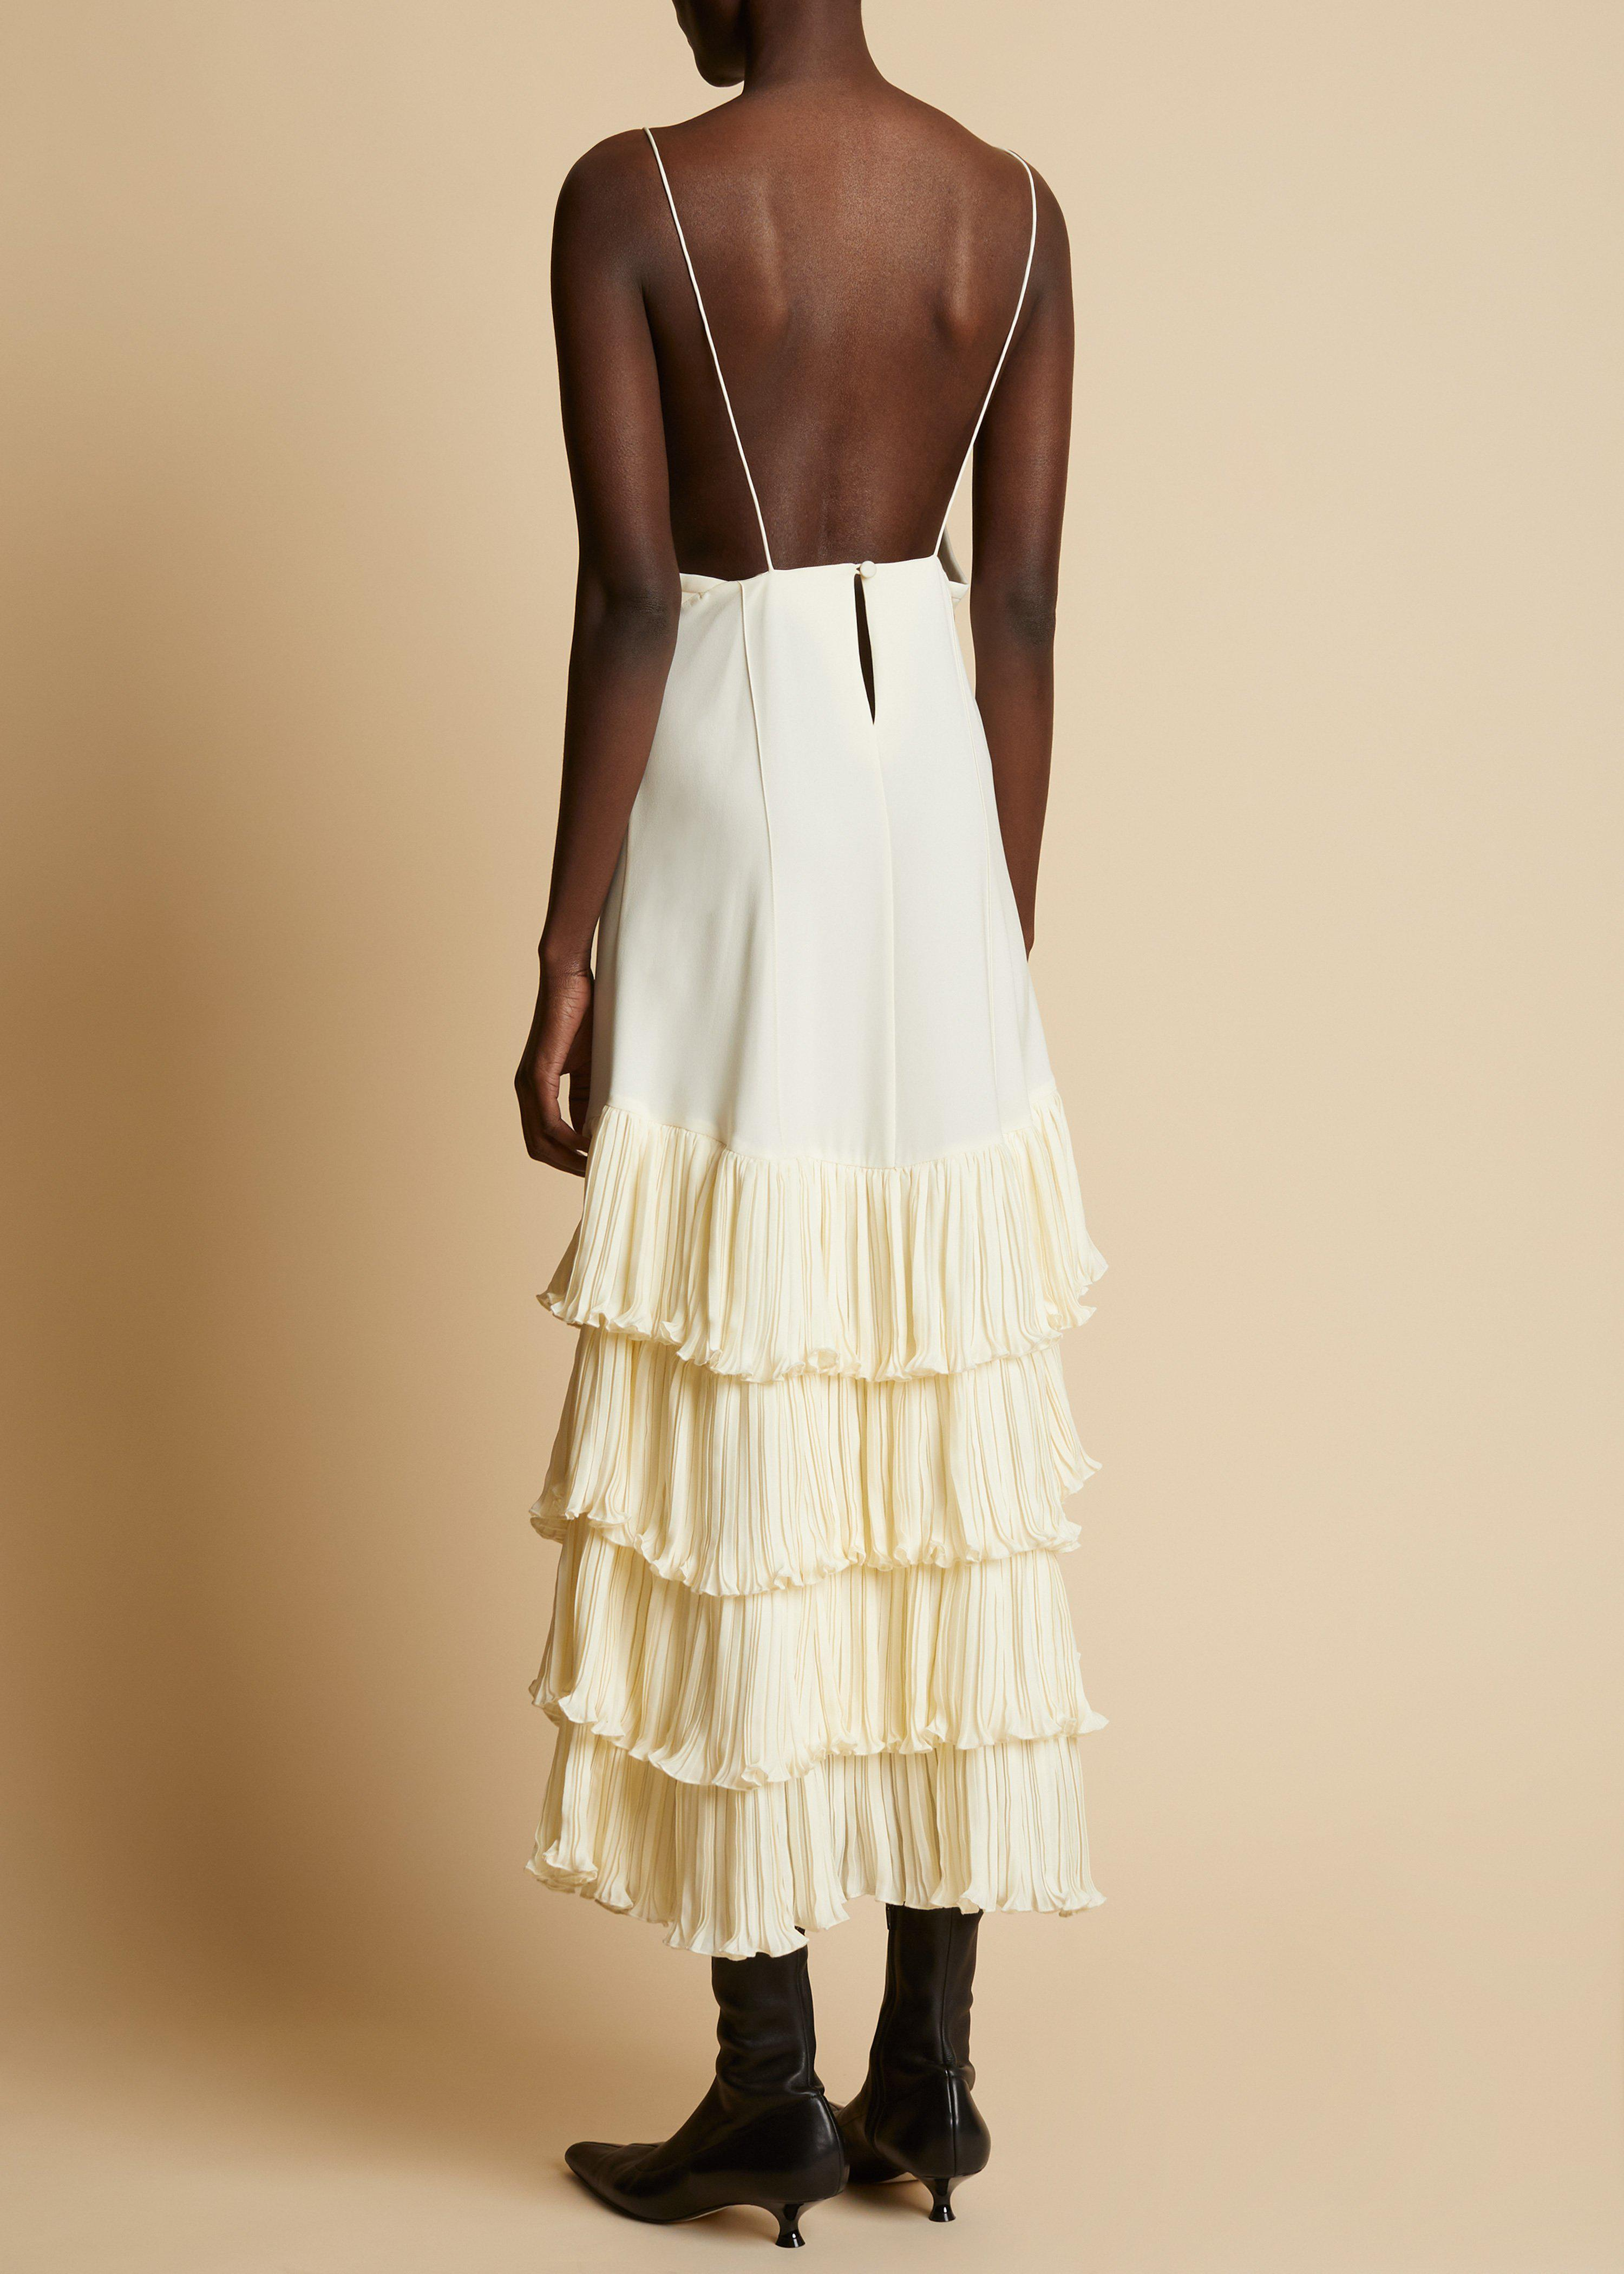 The Myrtle Dress in Ivory 2